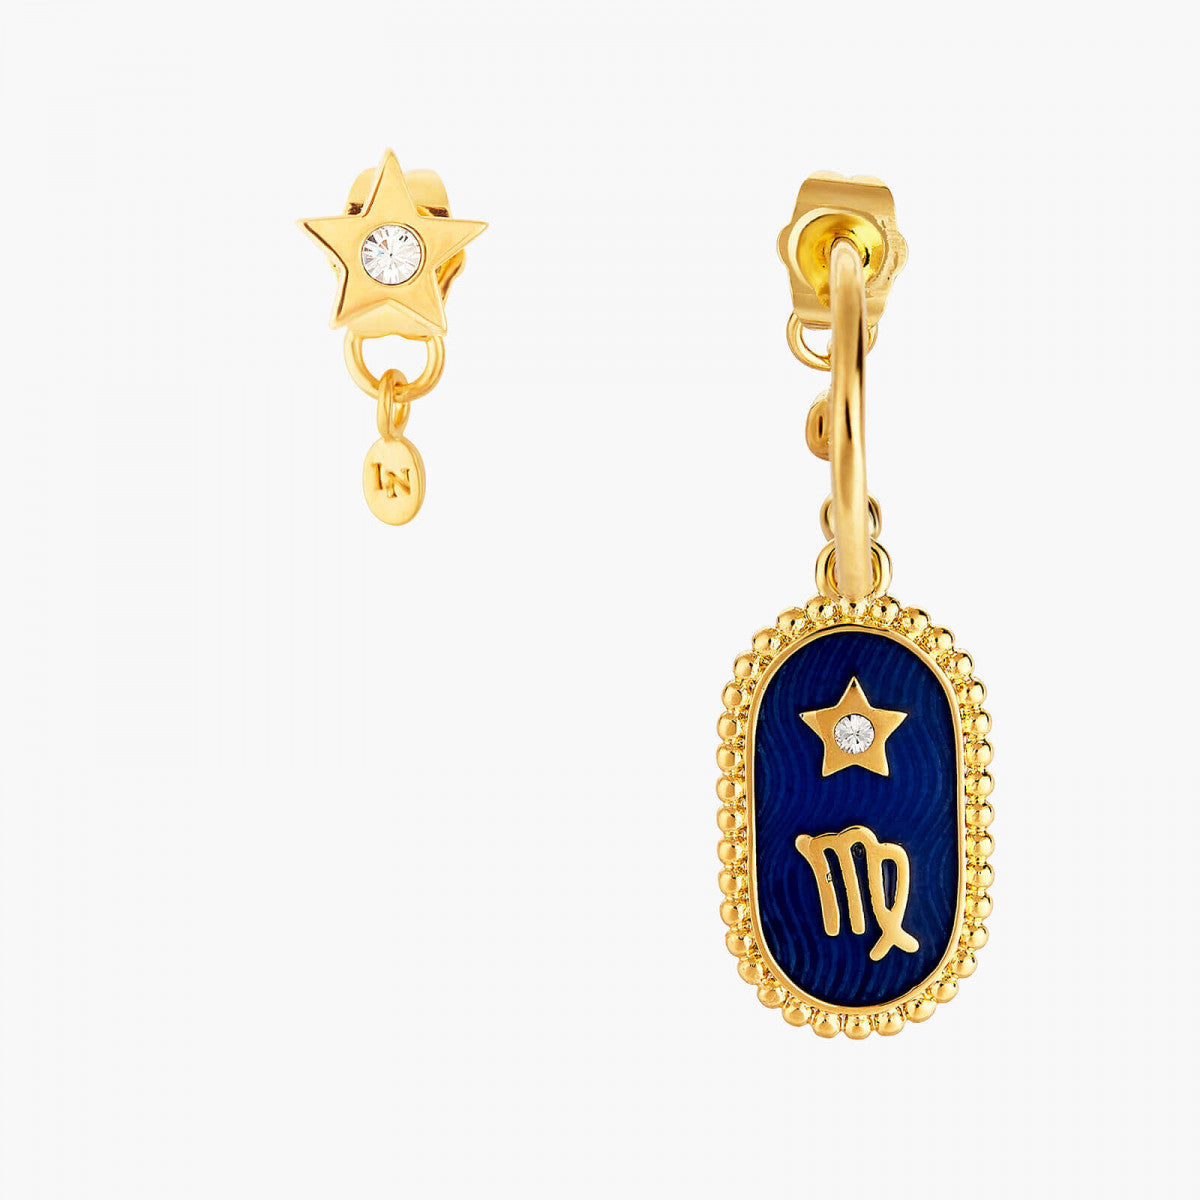 Libra Zodiac Sign Stud Earring